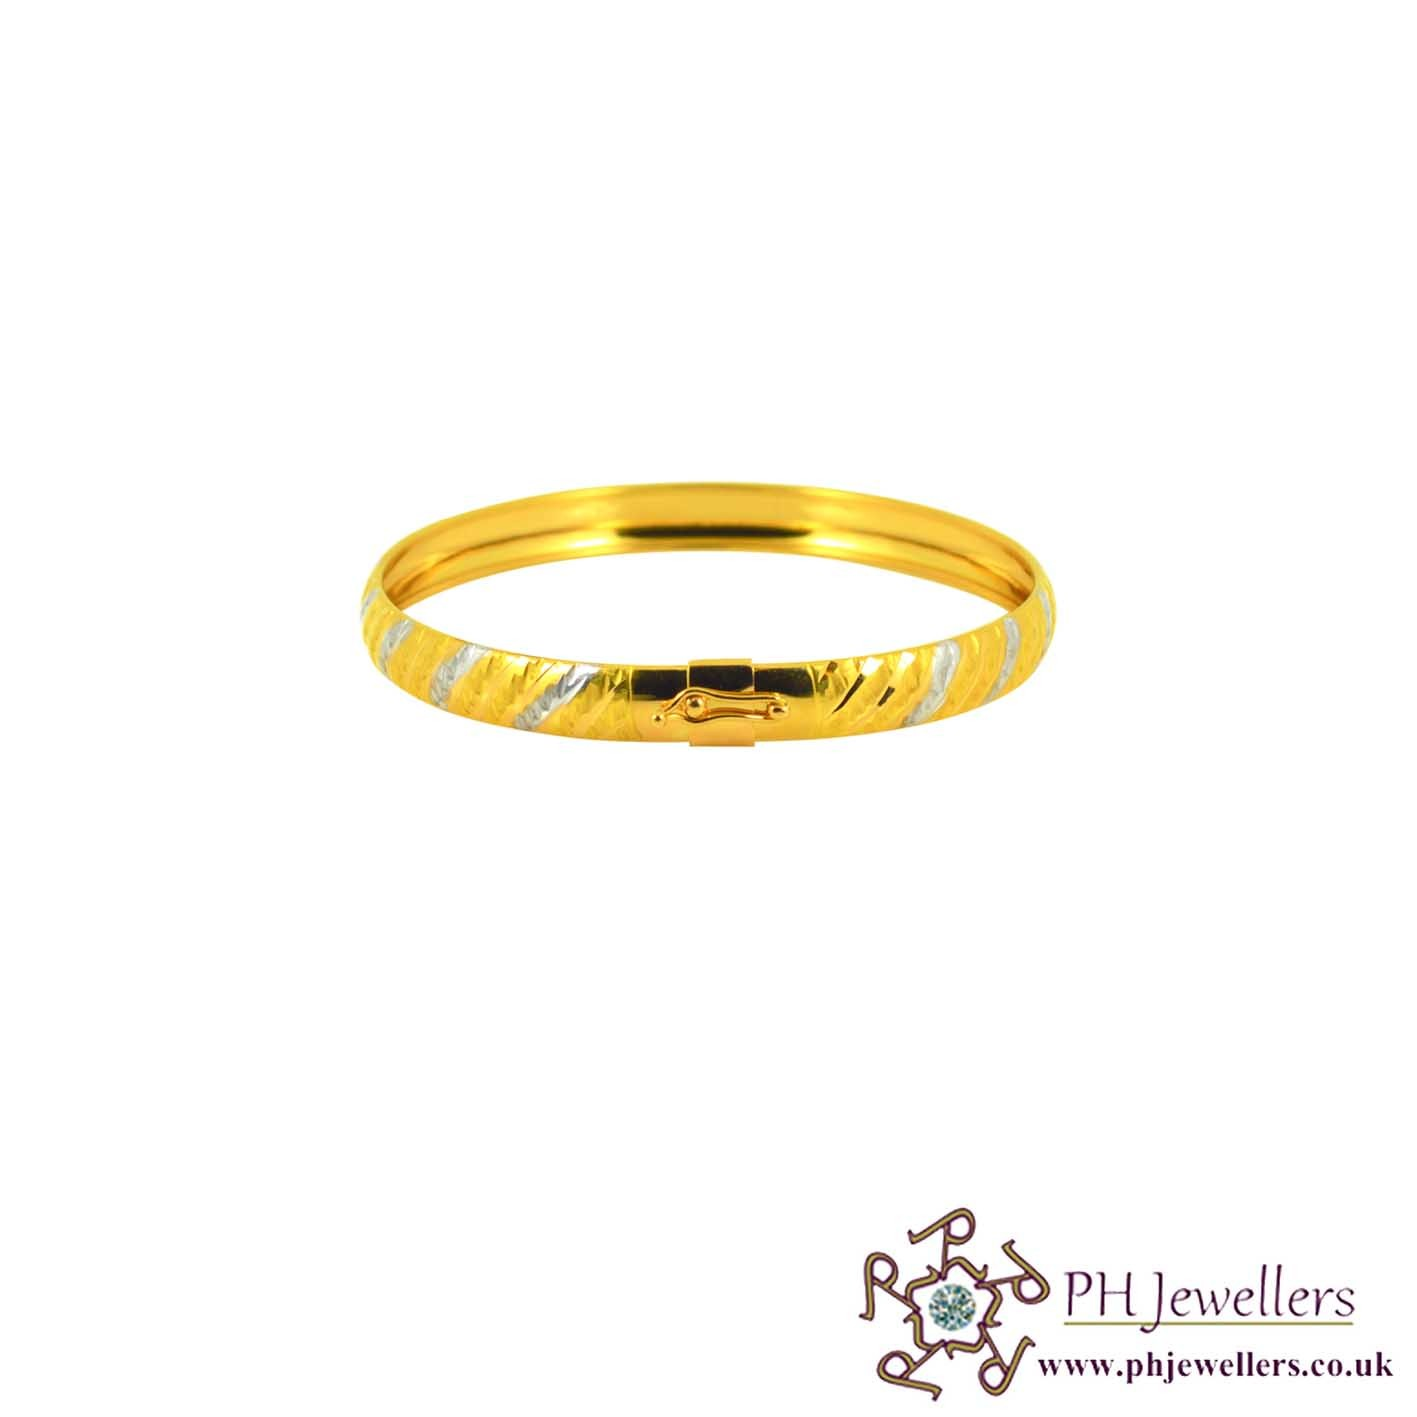 diamonds be behar park lika oval p thin gold on with bracelet bangle bangles